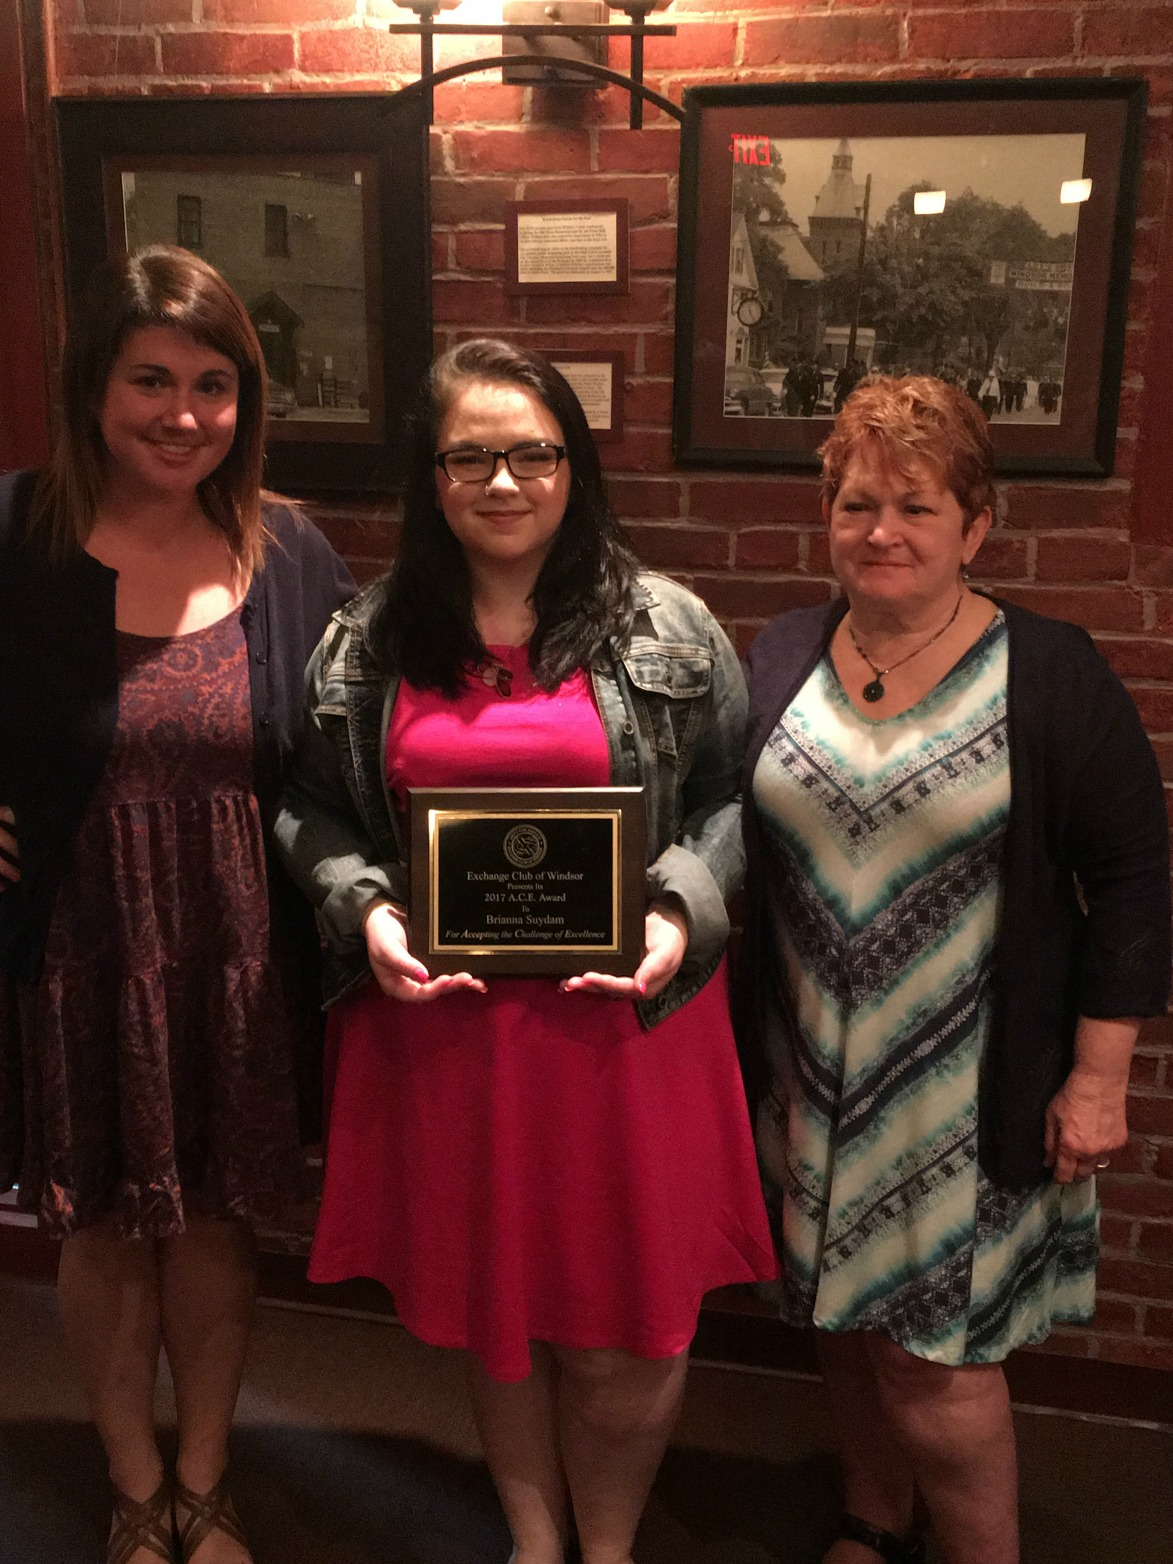 Exchange Club of Windsor Honors WHS student with A.C.E. Award